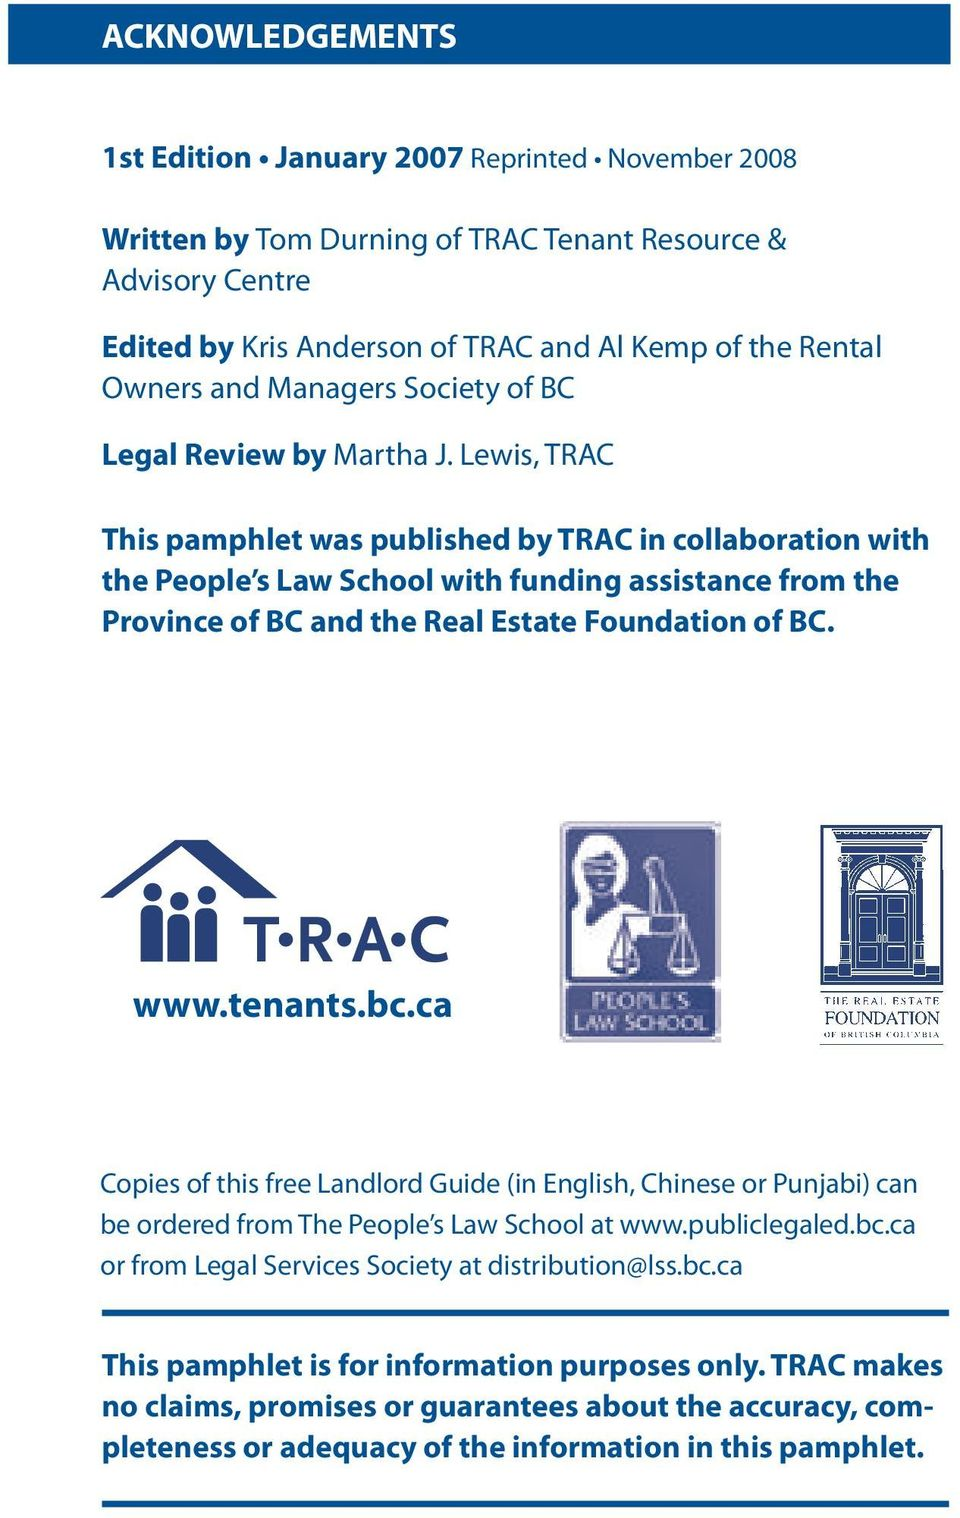 Lewis, TRAC This pamphlet was published by TRAC in collaboration with the People s Law School with funding assistance from the Province of BC and the Real Estate Foundation of BC. www.tenants.bc.